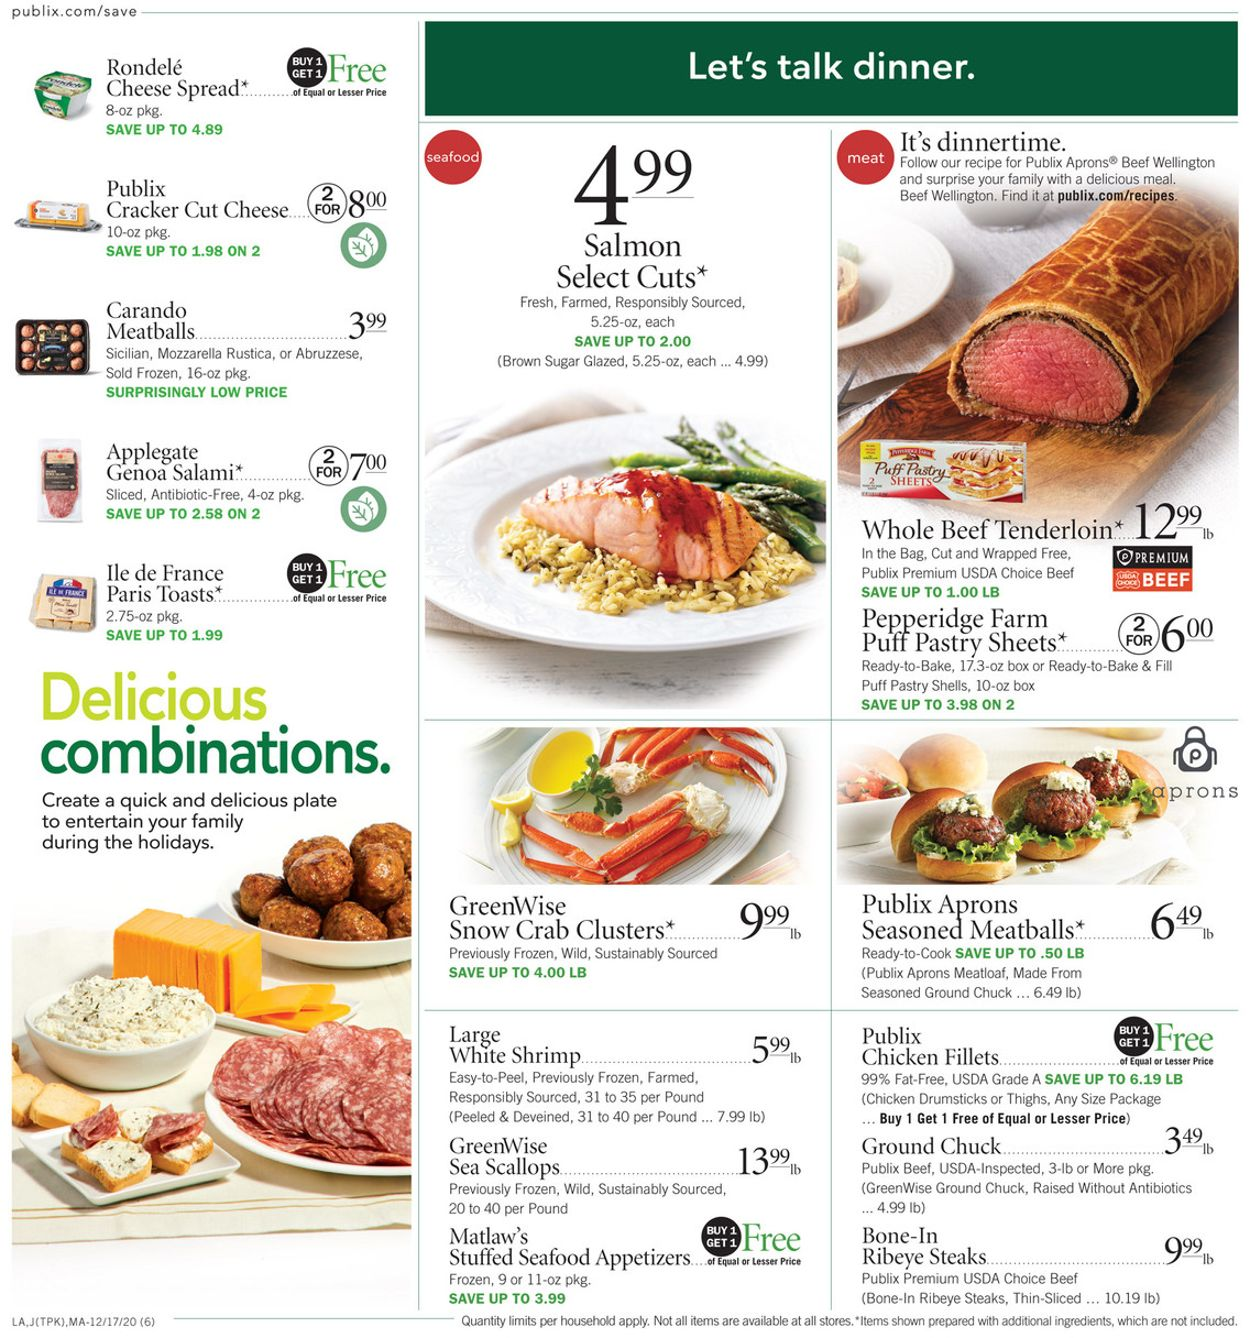 Publix Christmas Ad 2021 Georgia Publix Christmas Ad 2020 Current Weekly Ad 12 17 12 24 2020 6 Frequent Ads Com